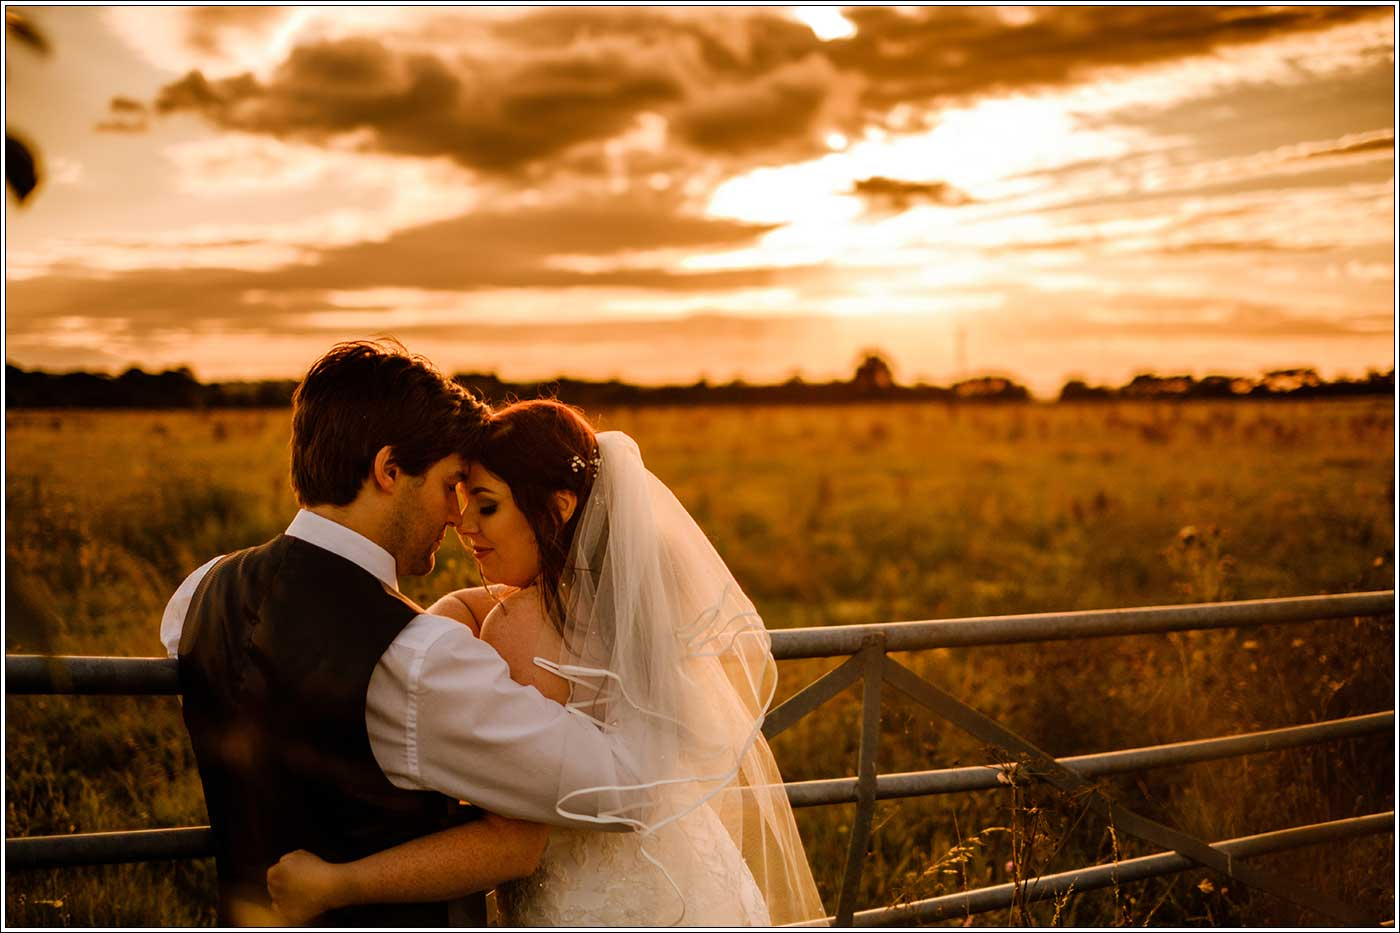 Bride and groom overlooking Park Hall Farm fields during the golden hour setting sun